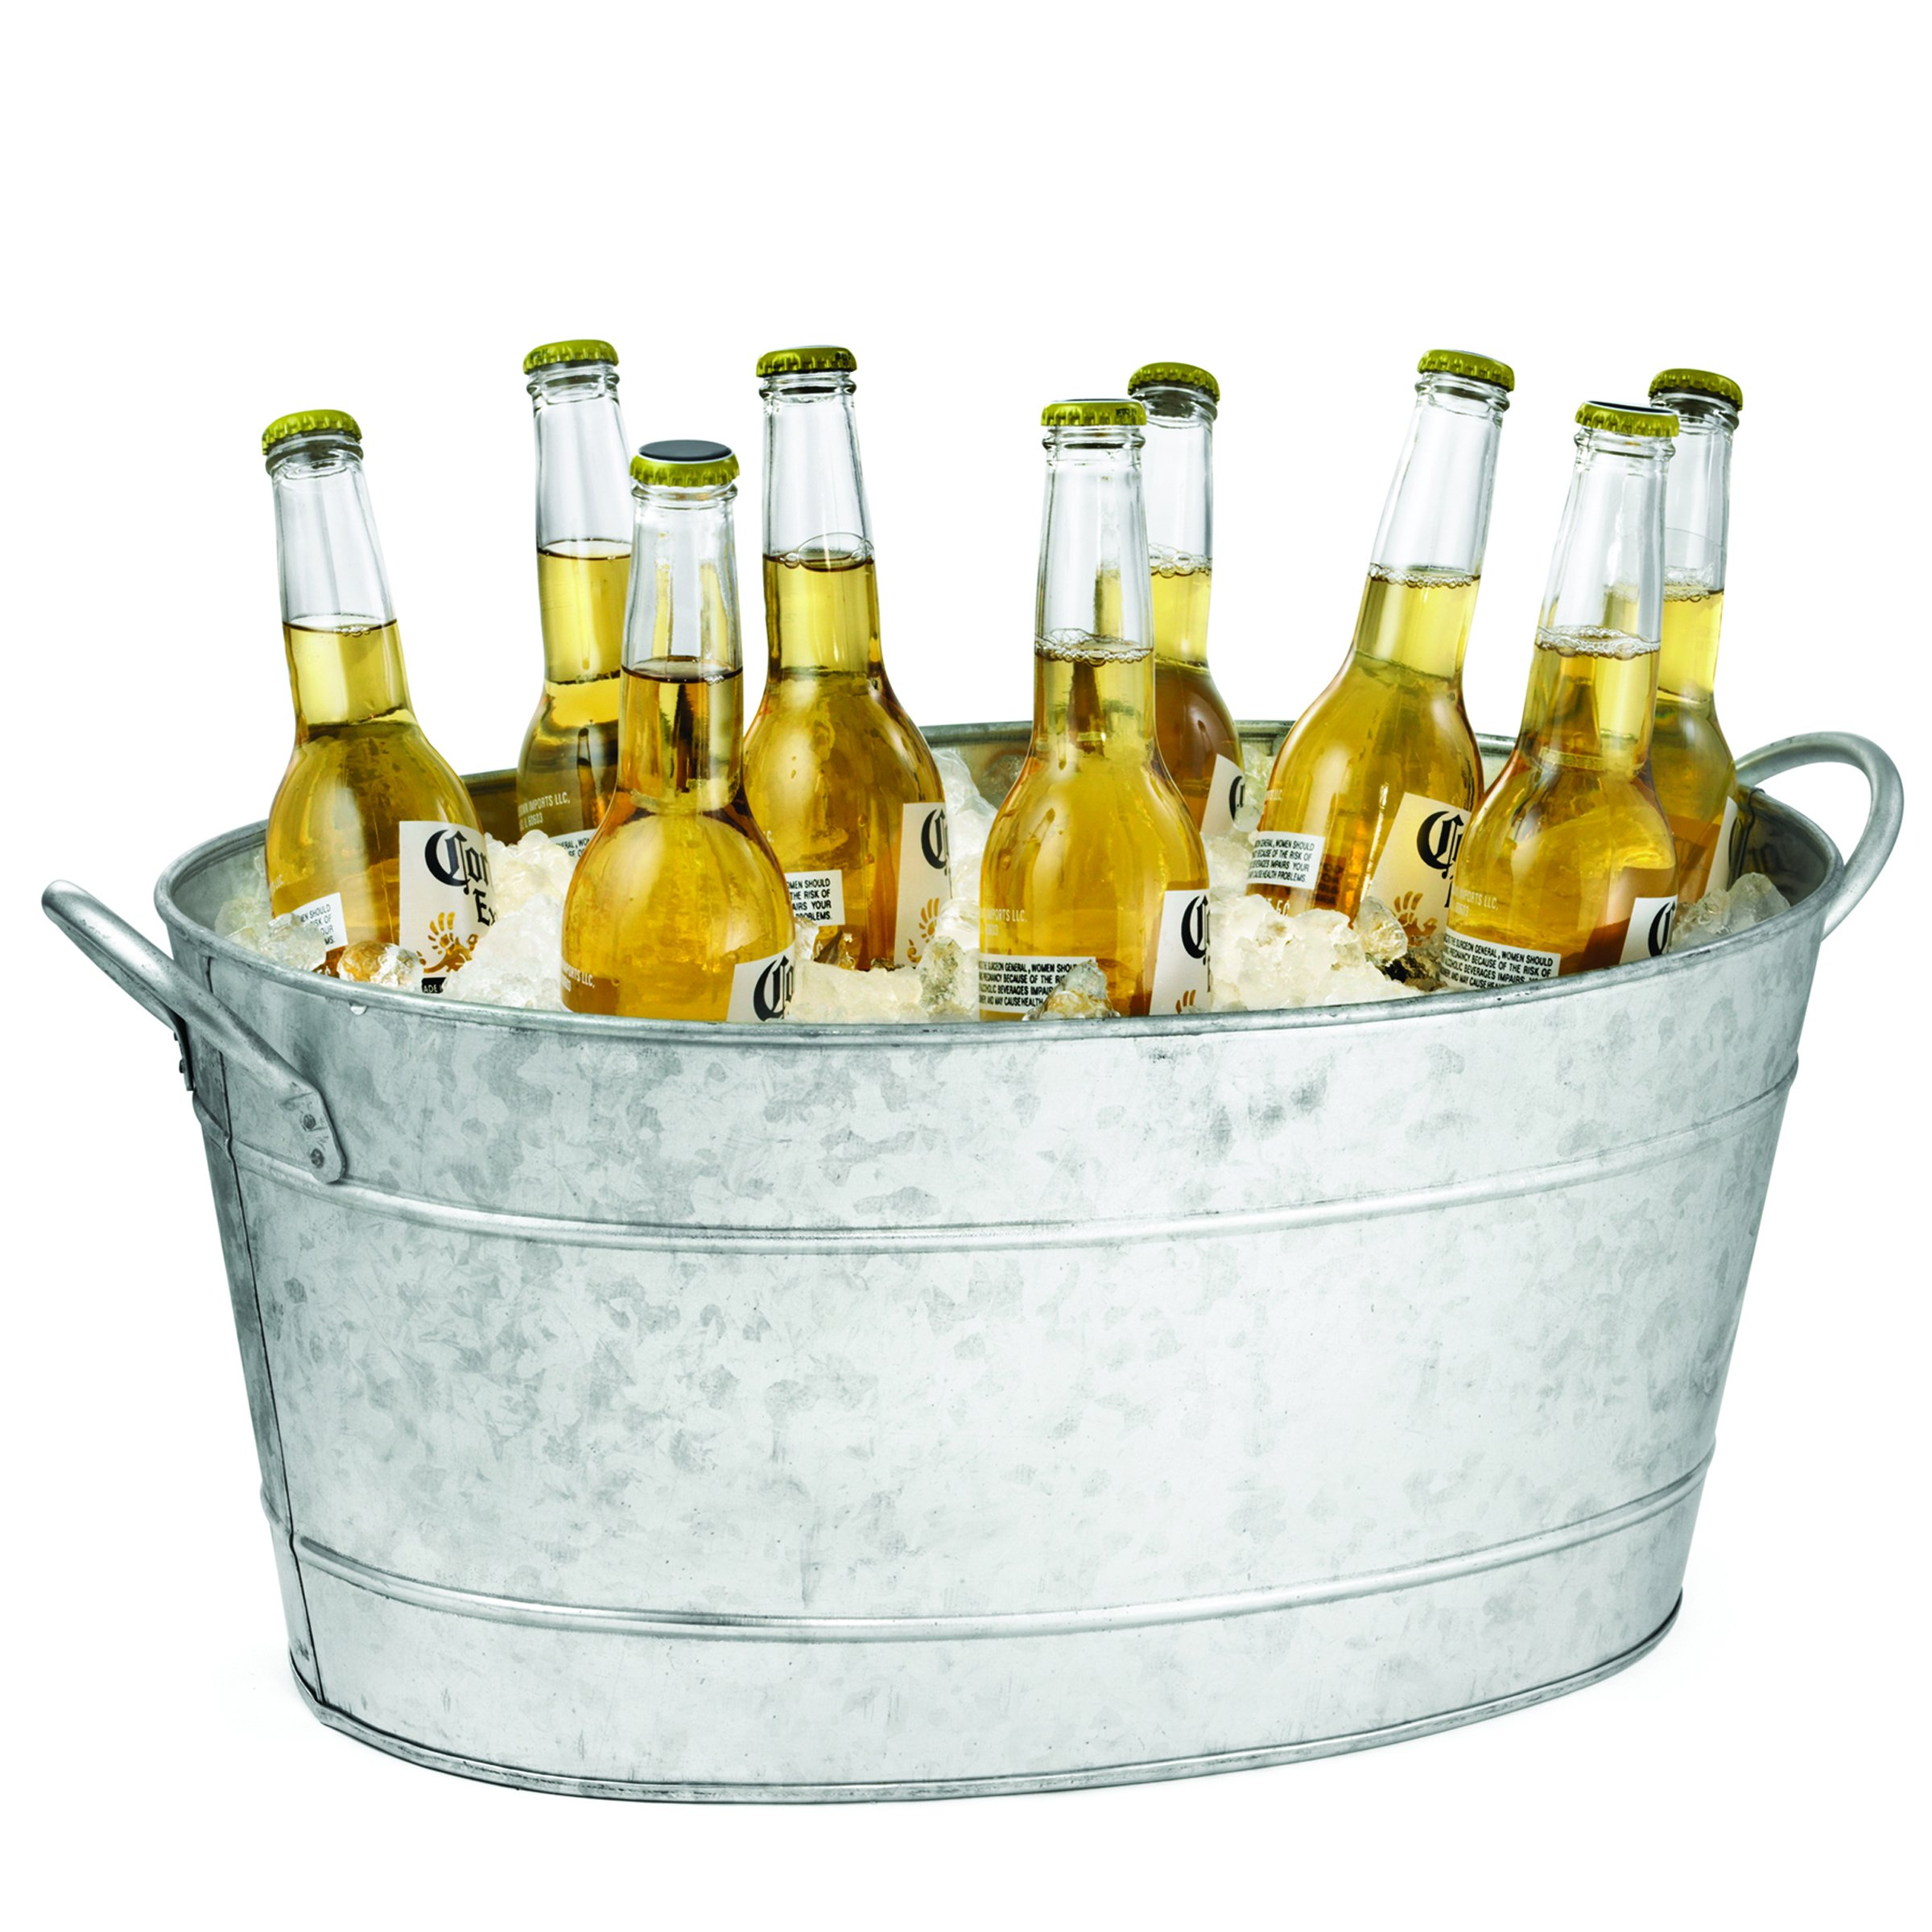 Tablecraft Galvanized Oval Beverage Tub, 5.5 Gallons by Tablecraft